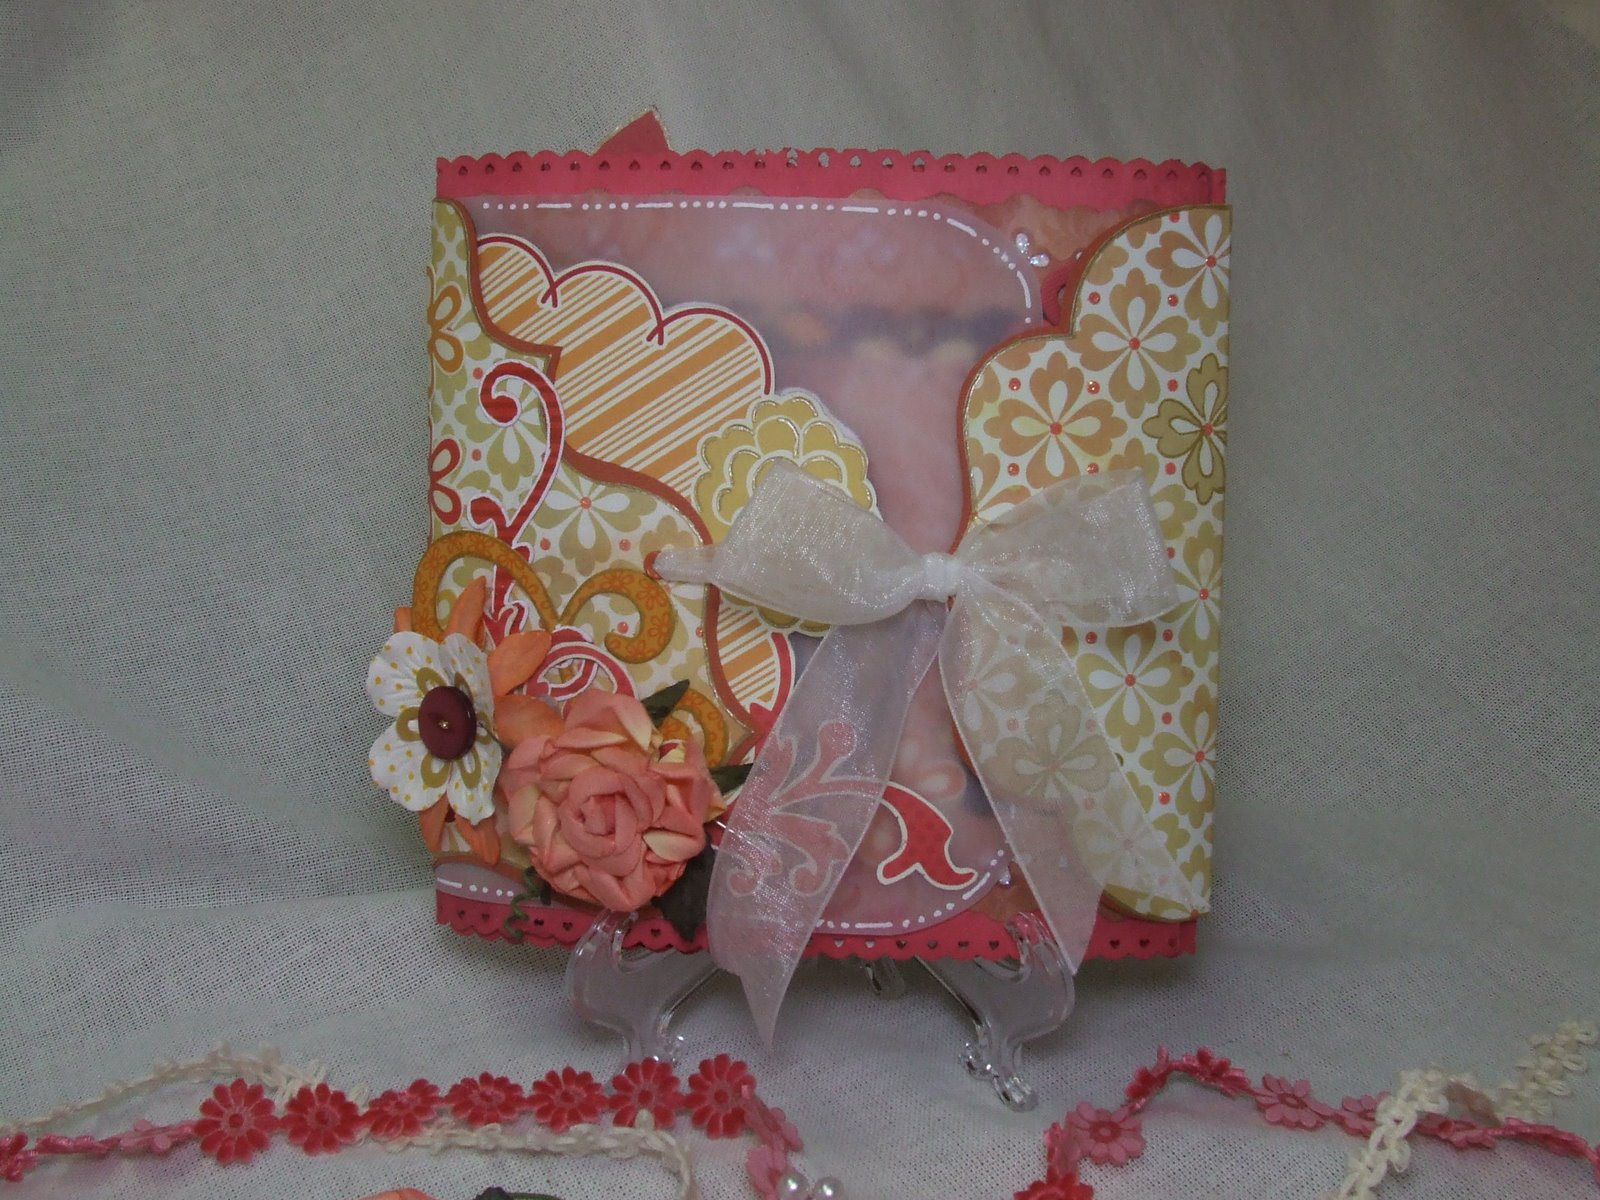 http://blog.uniquelygrace.com/2009/05/enjoy-little-things-mothers-day-gift.html